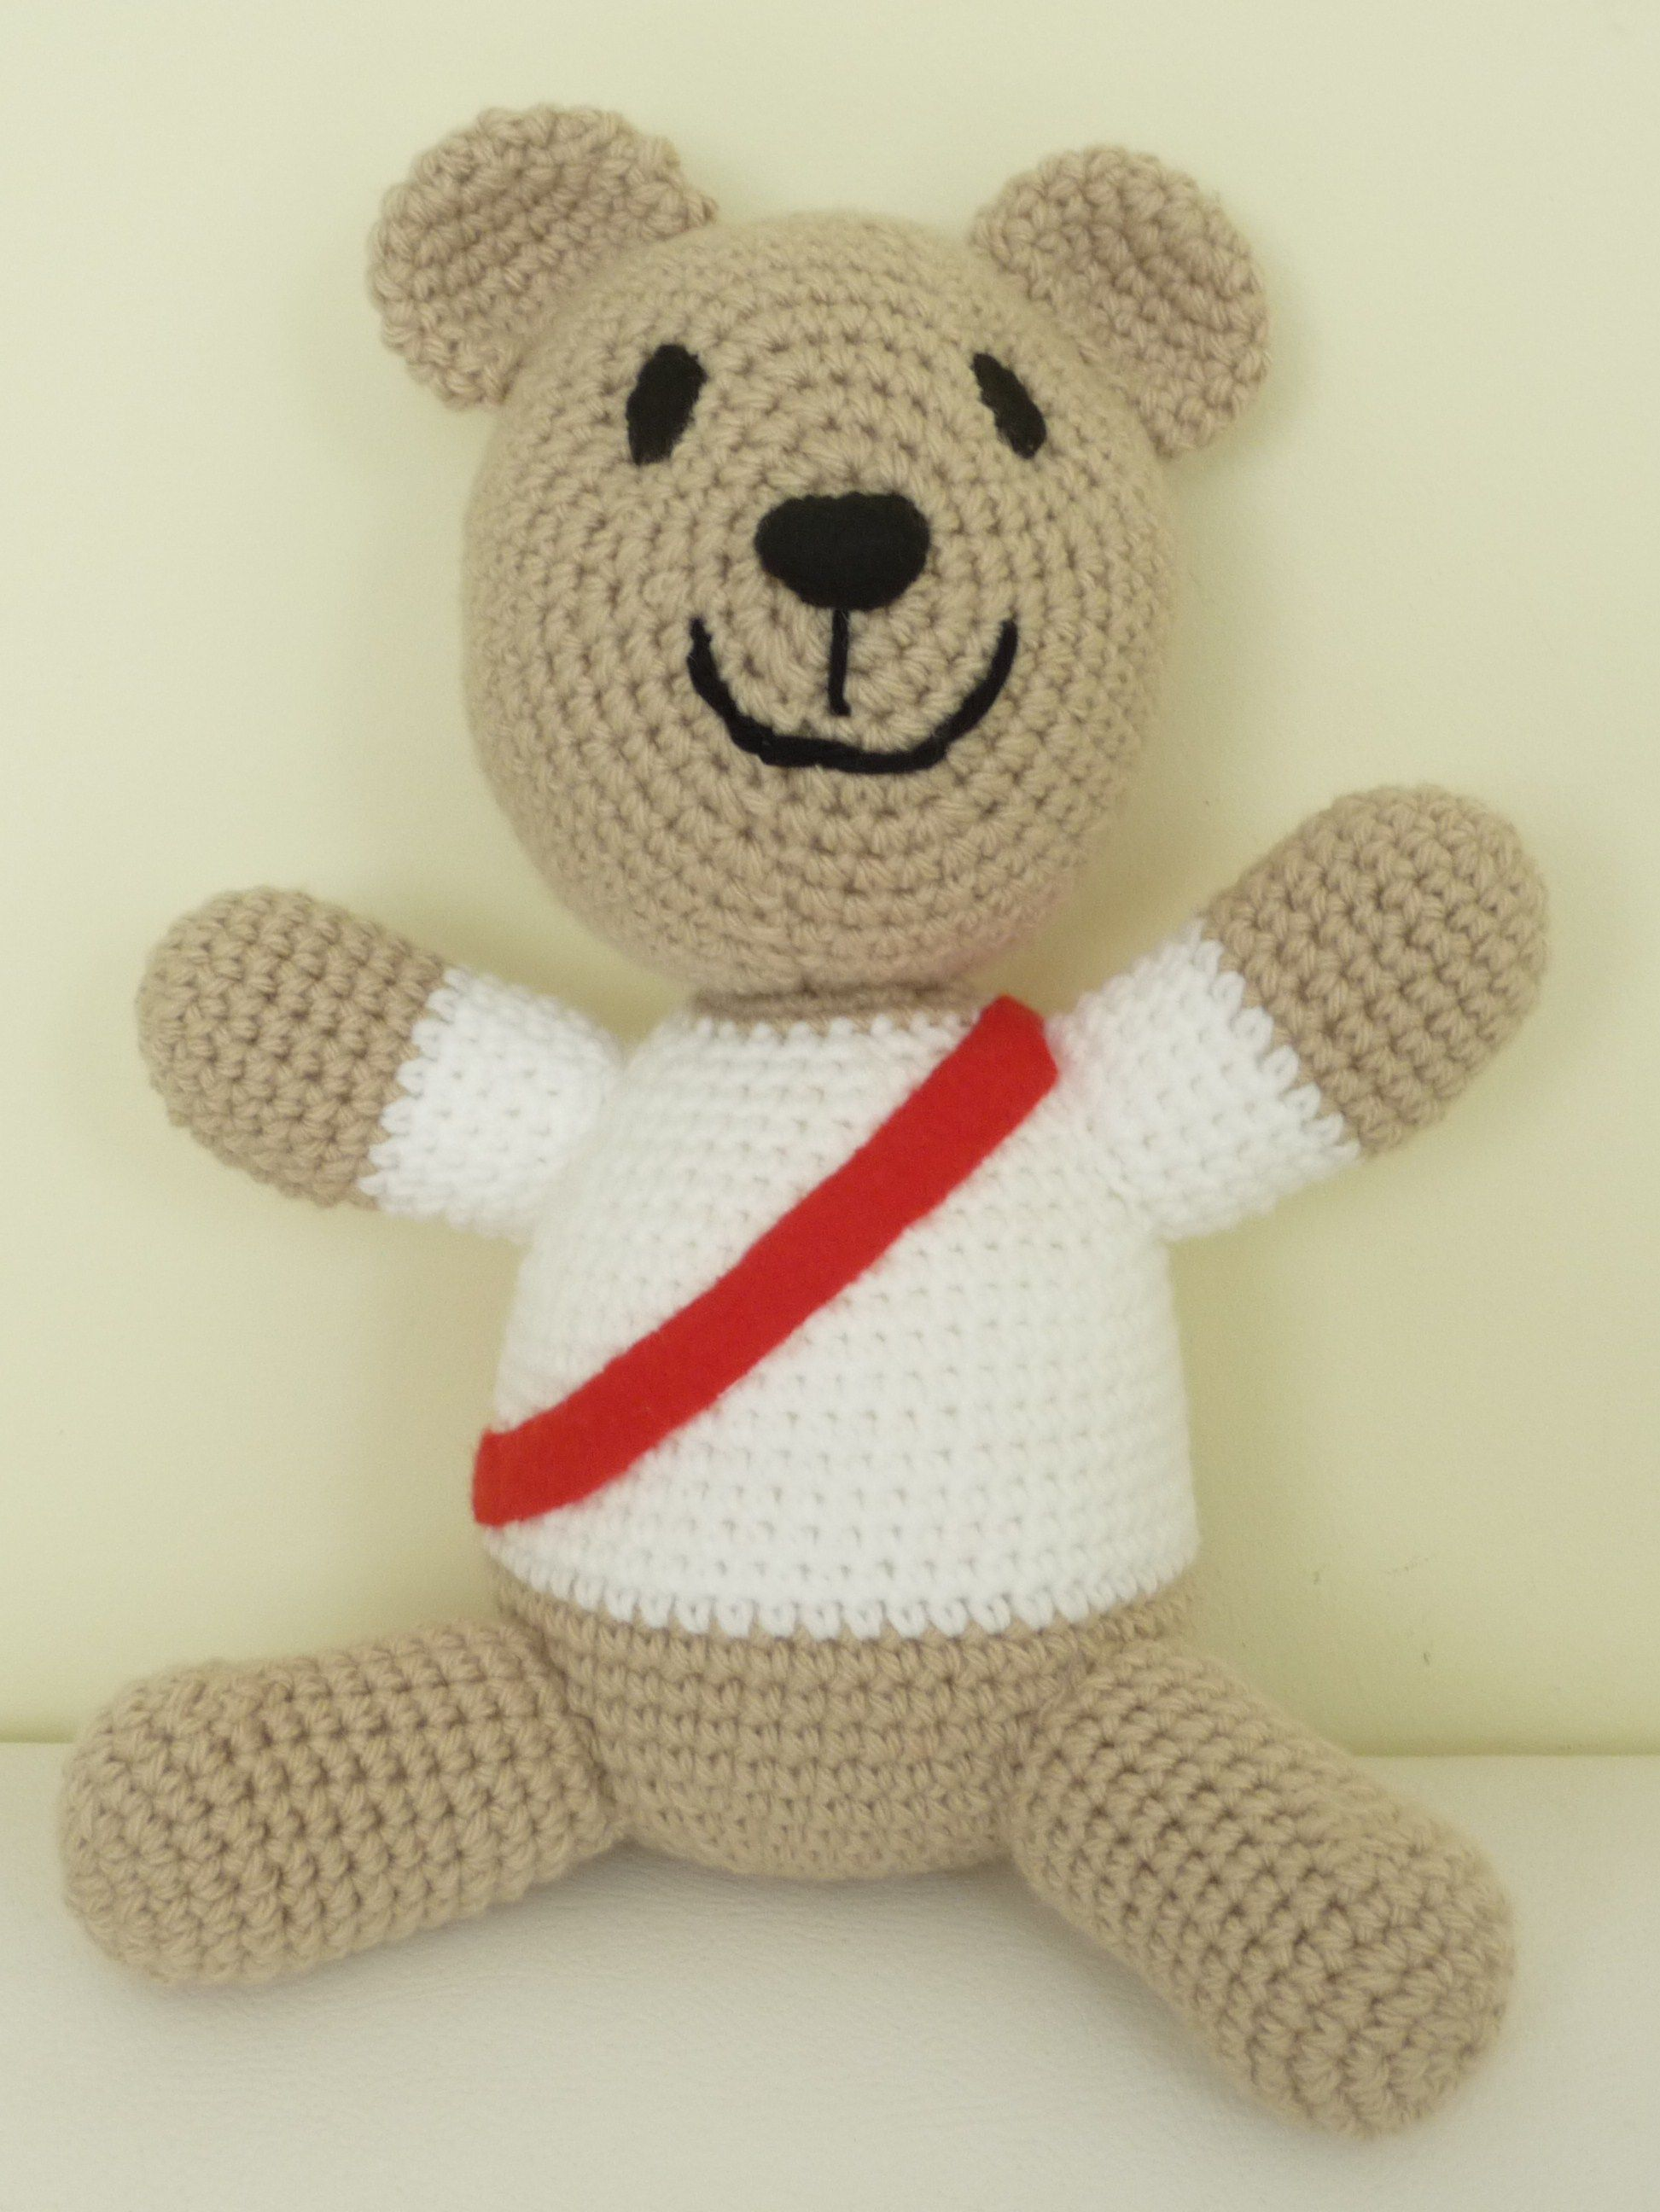 Everyday Muebles Rey Oso Teddy De River River Plate Pinterest Oso Teddy